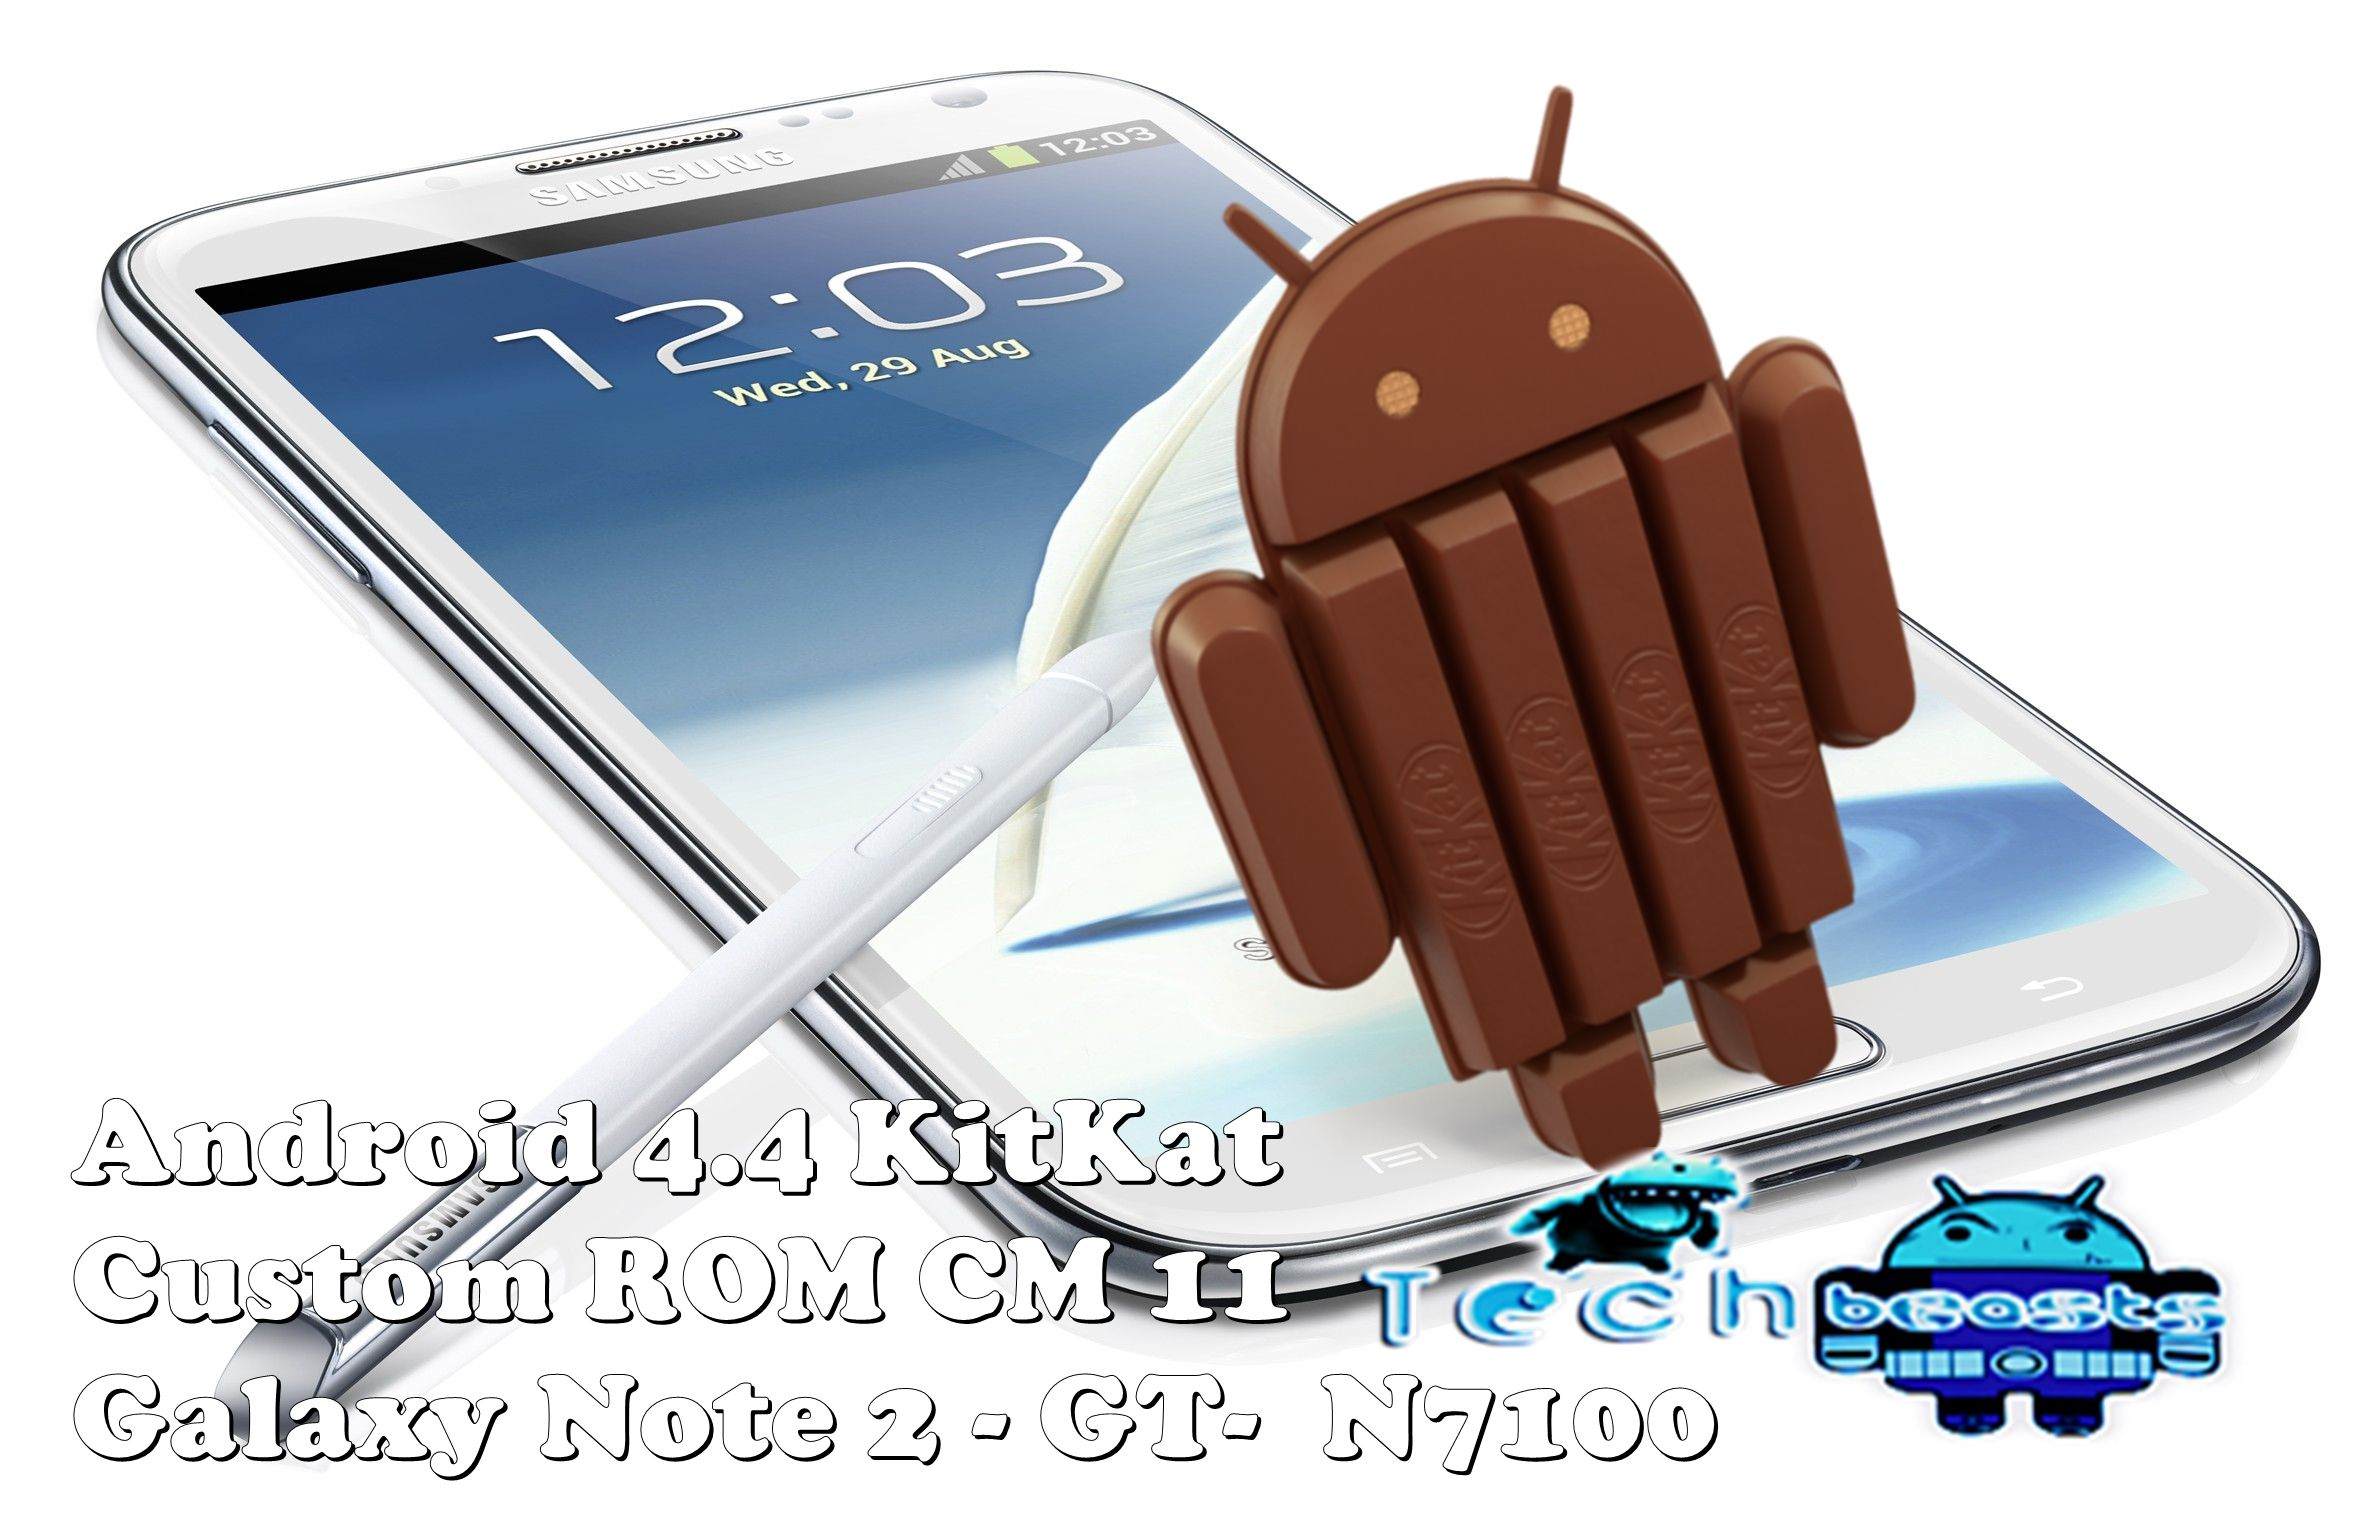 Install Android 4 4 KitKat on Samsung Galaxy Note 2 GT-N7100